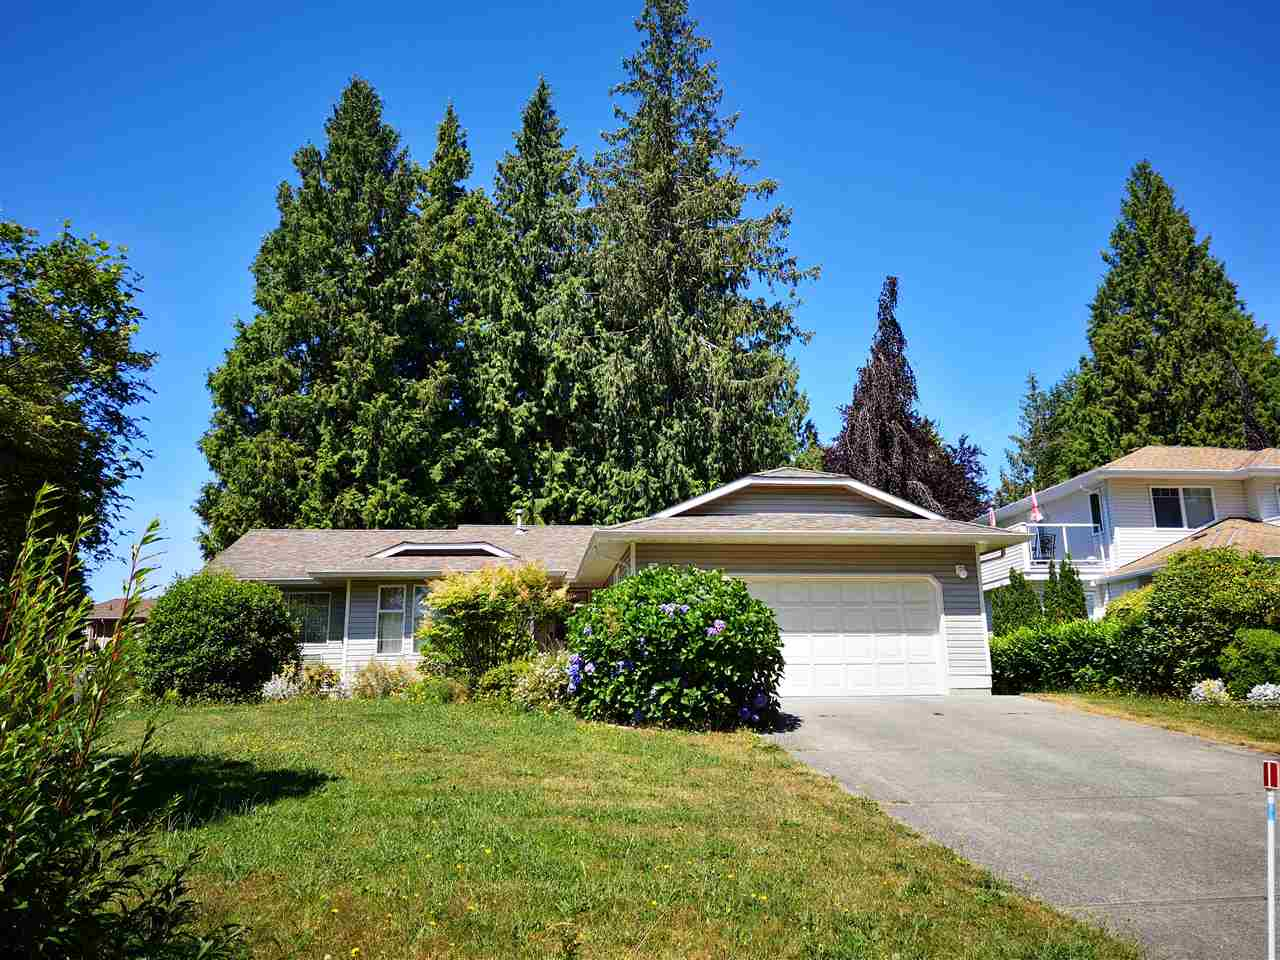 1448 BONNIEBROOK HEIGHTS ROAD - Gibsons & Area House/Single Family for sale, 3 Bedrooms (R2482137) - #1